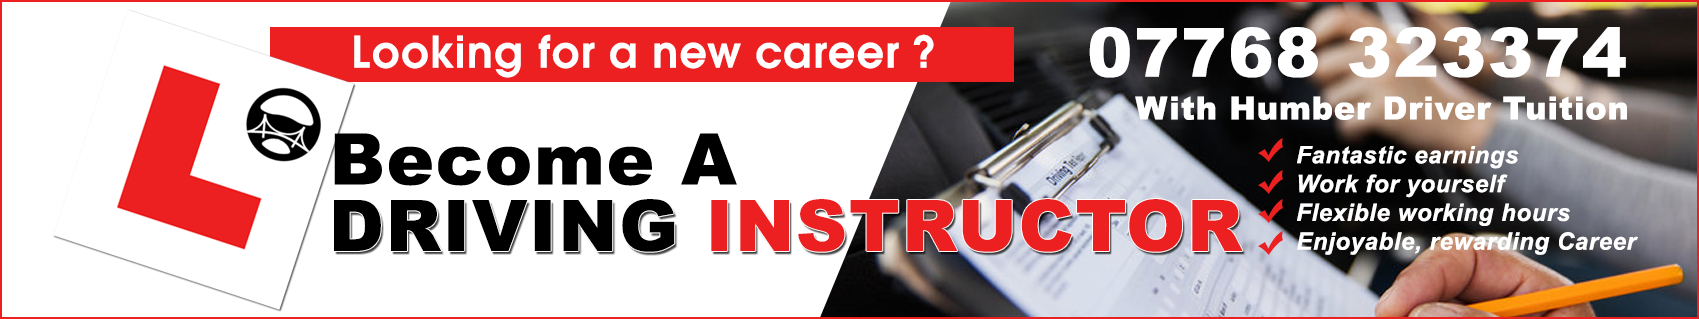 driving instructor tuition